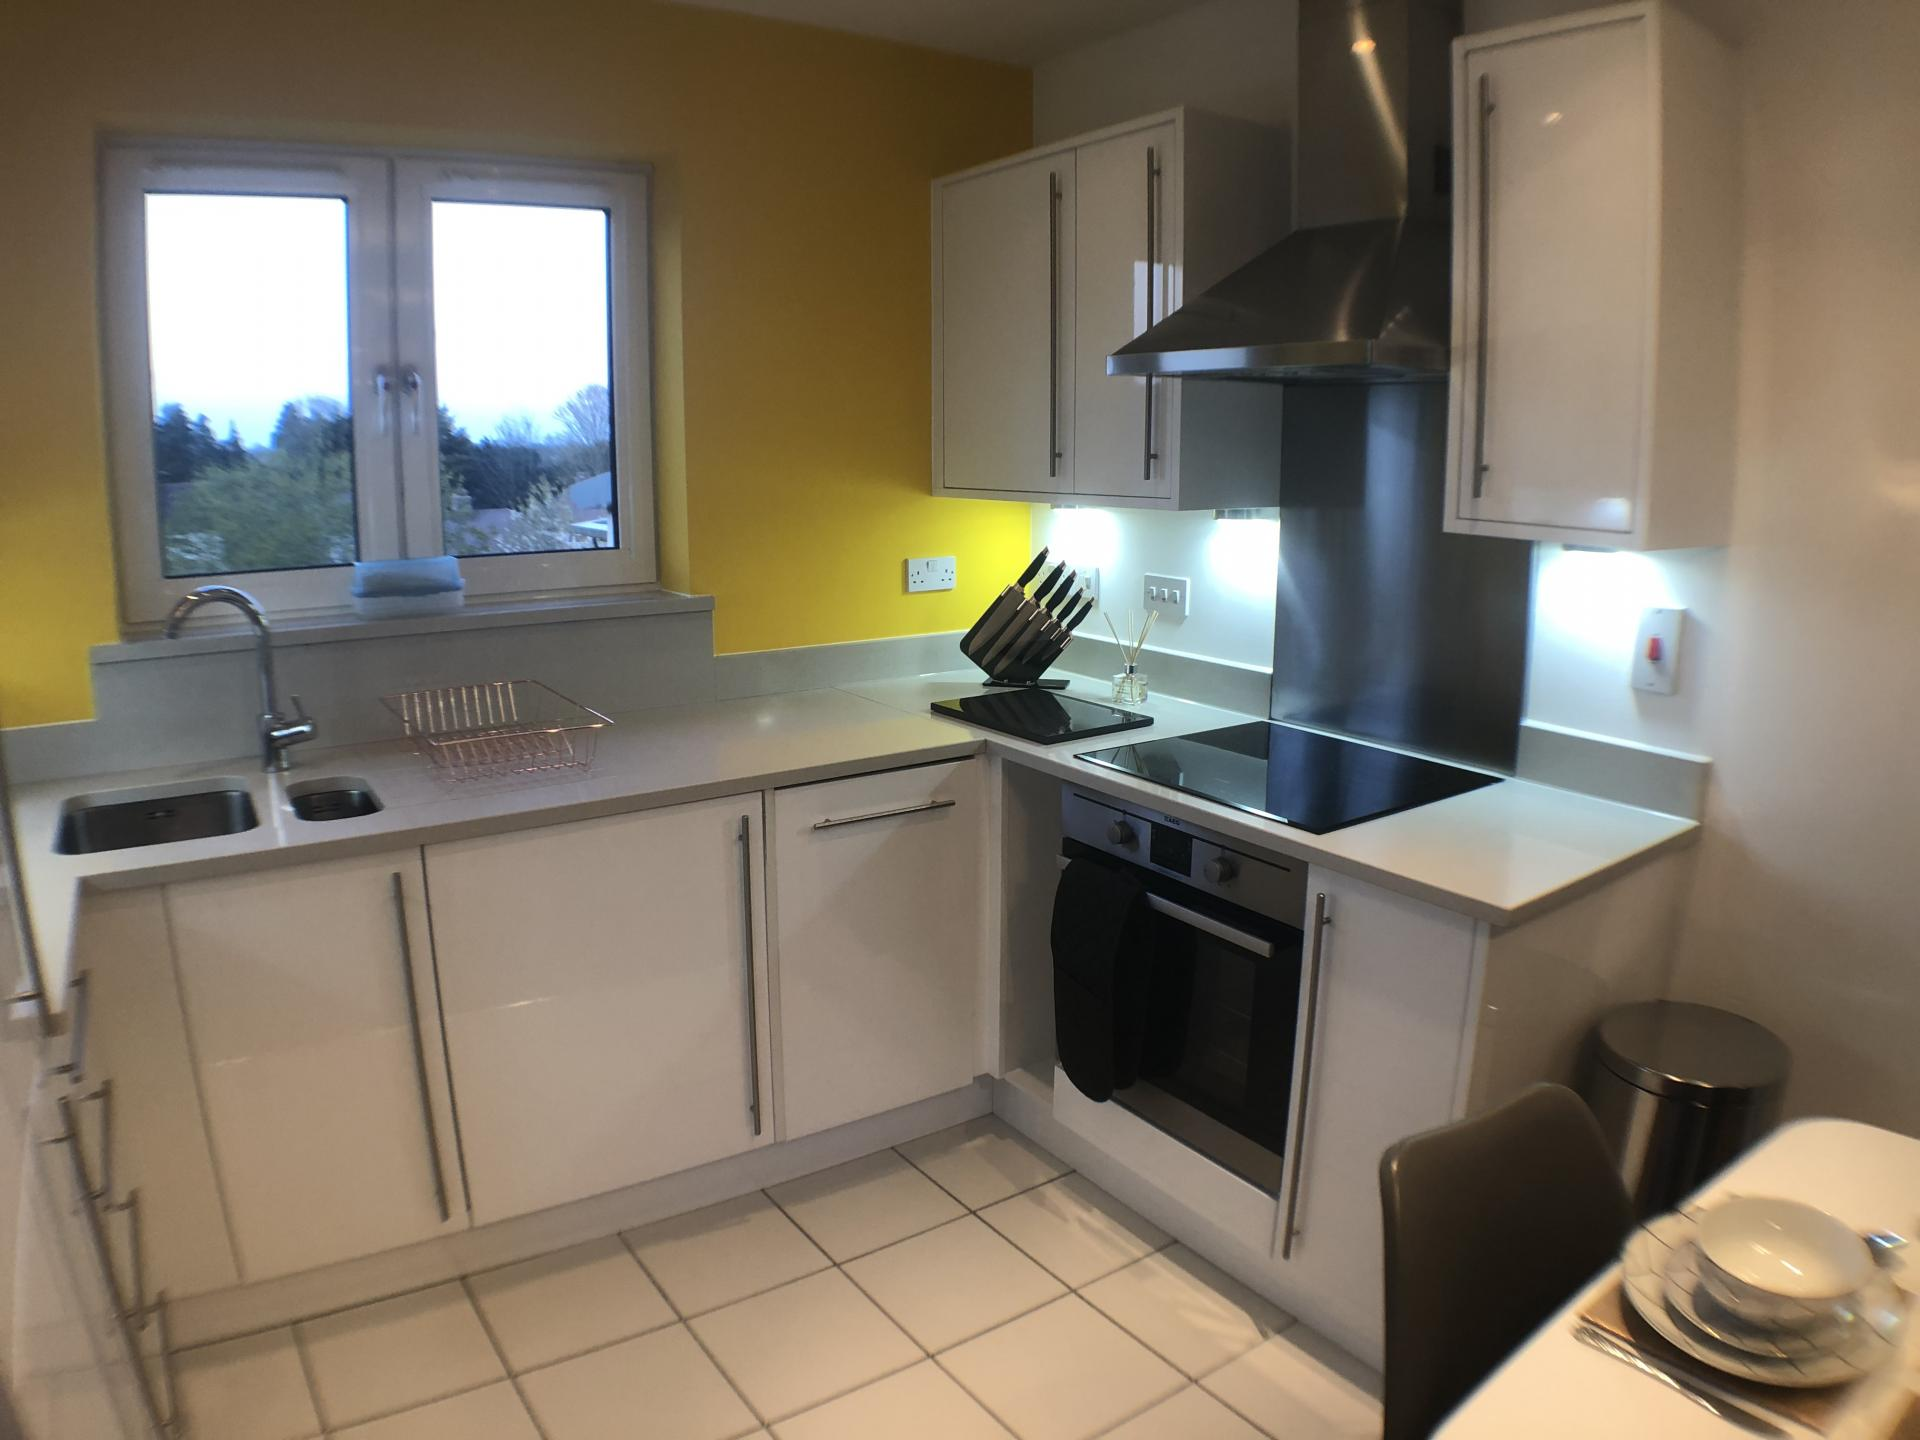 Kitchen at Mulberry Lodge Apartments, Centre, St Albans